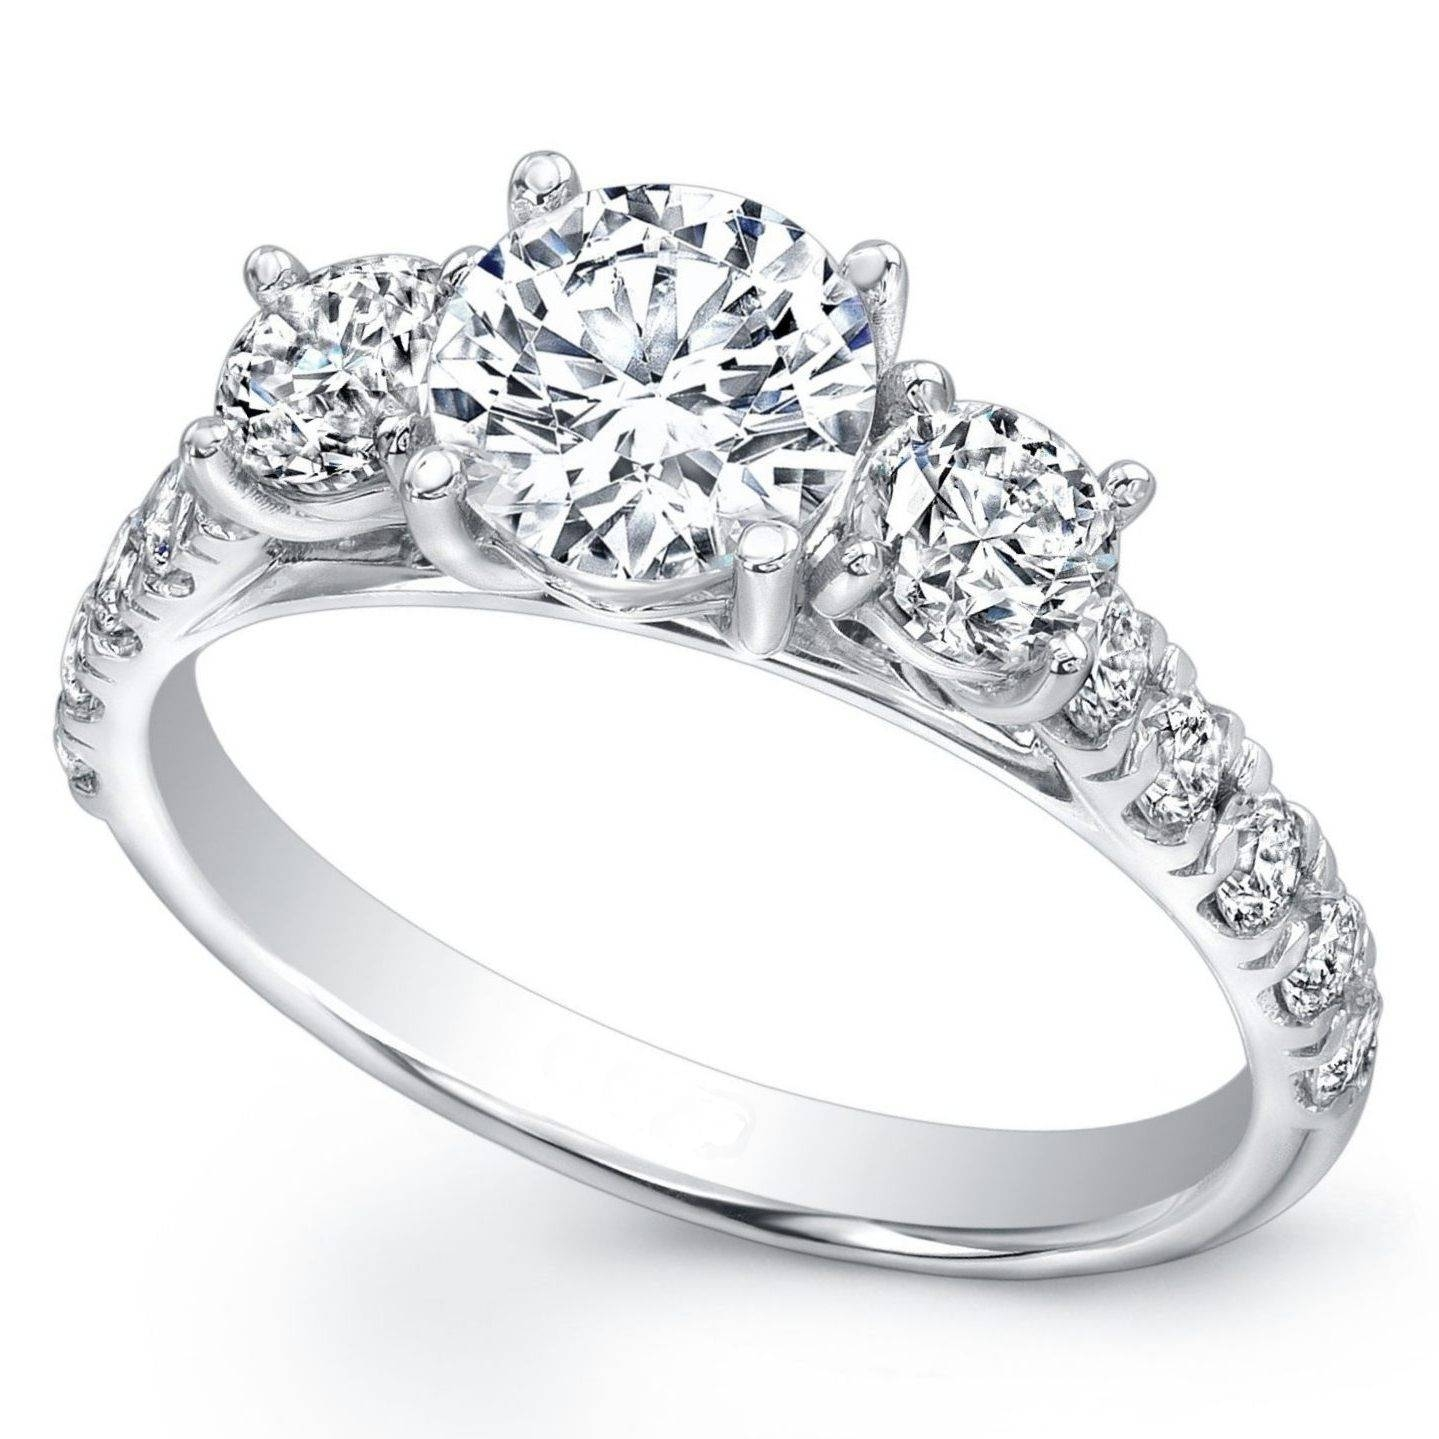 Engagement Rings 3 Stone | Wedding, Promise, Diamond, Engagement In Three Stone Wedding Rings (View 3 of 15)